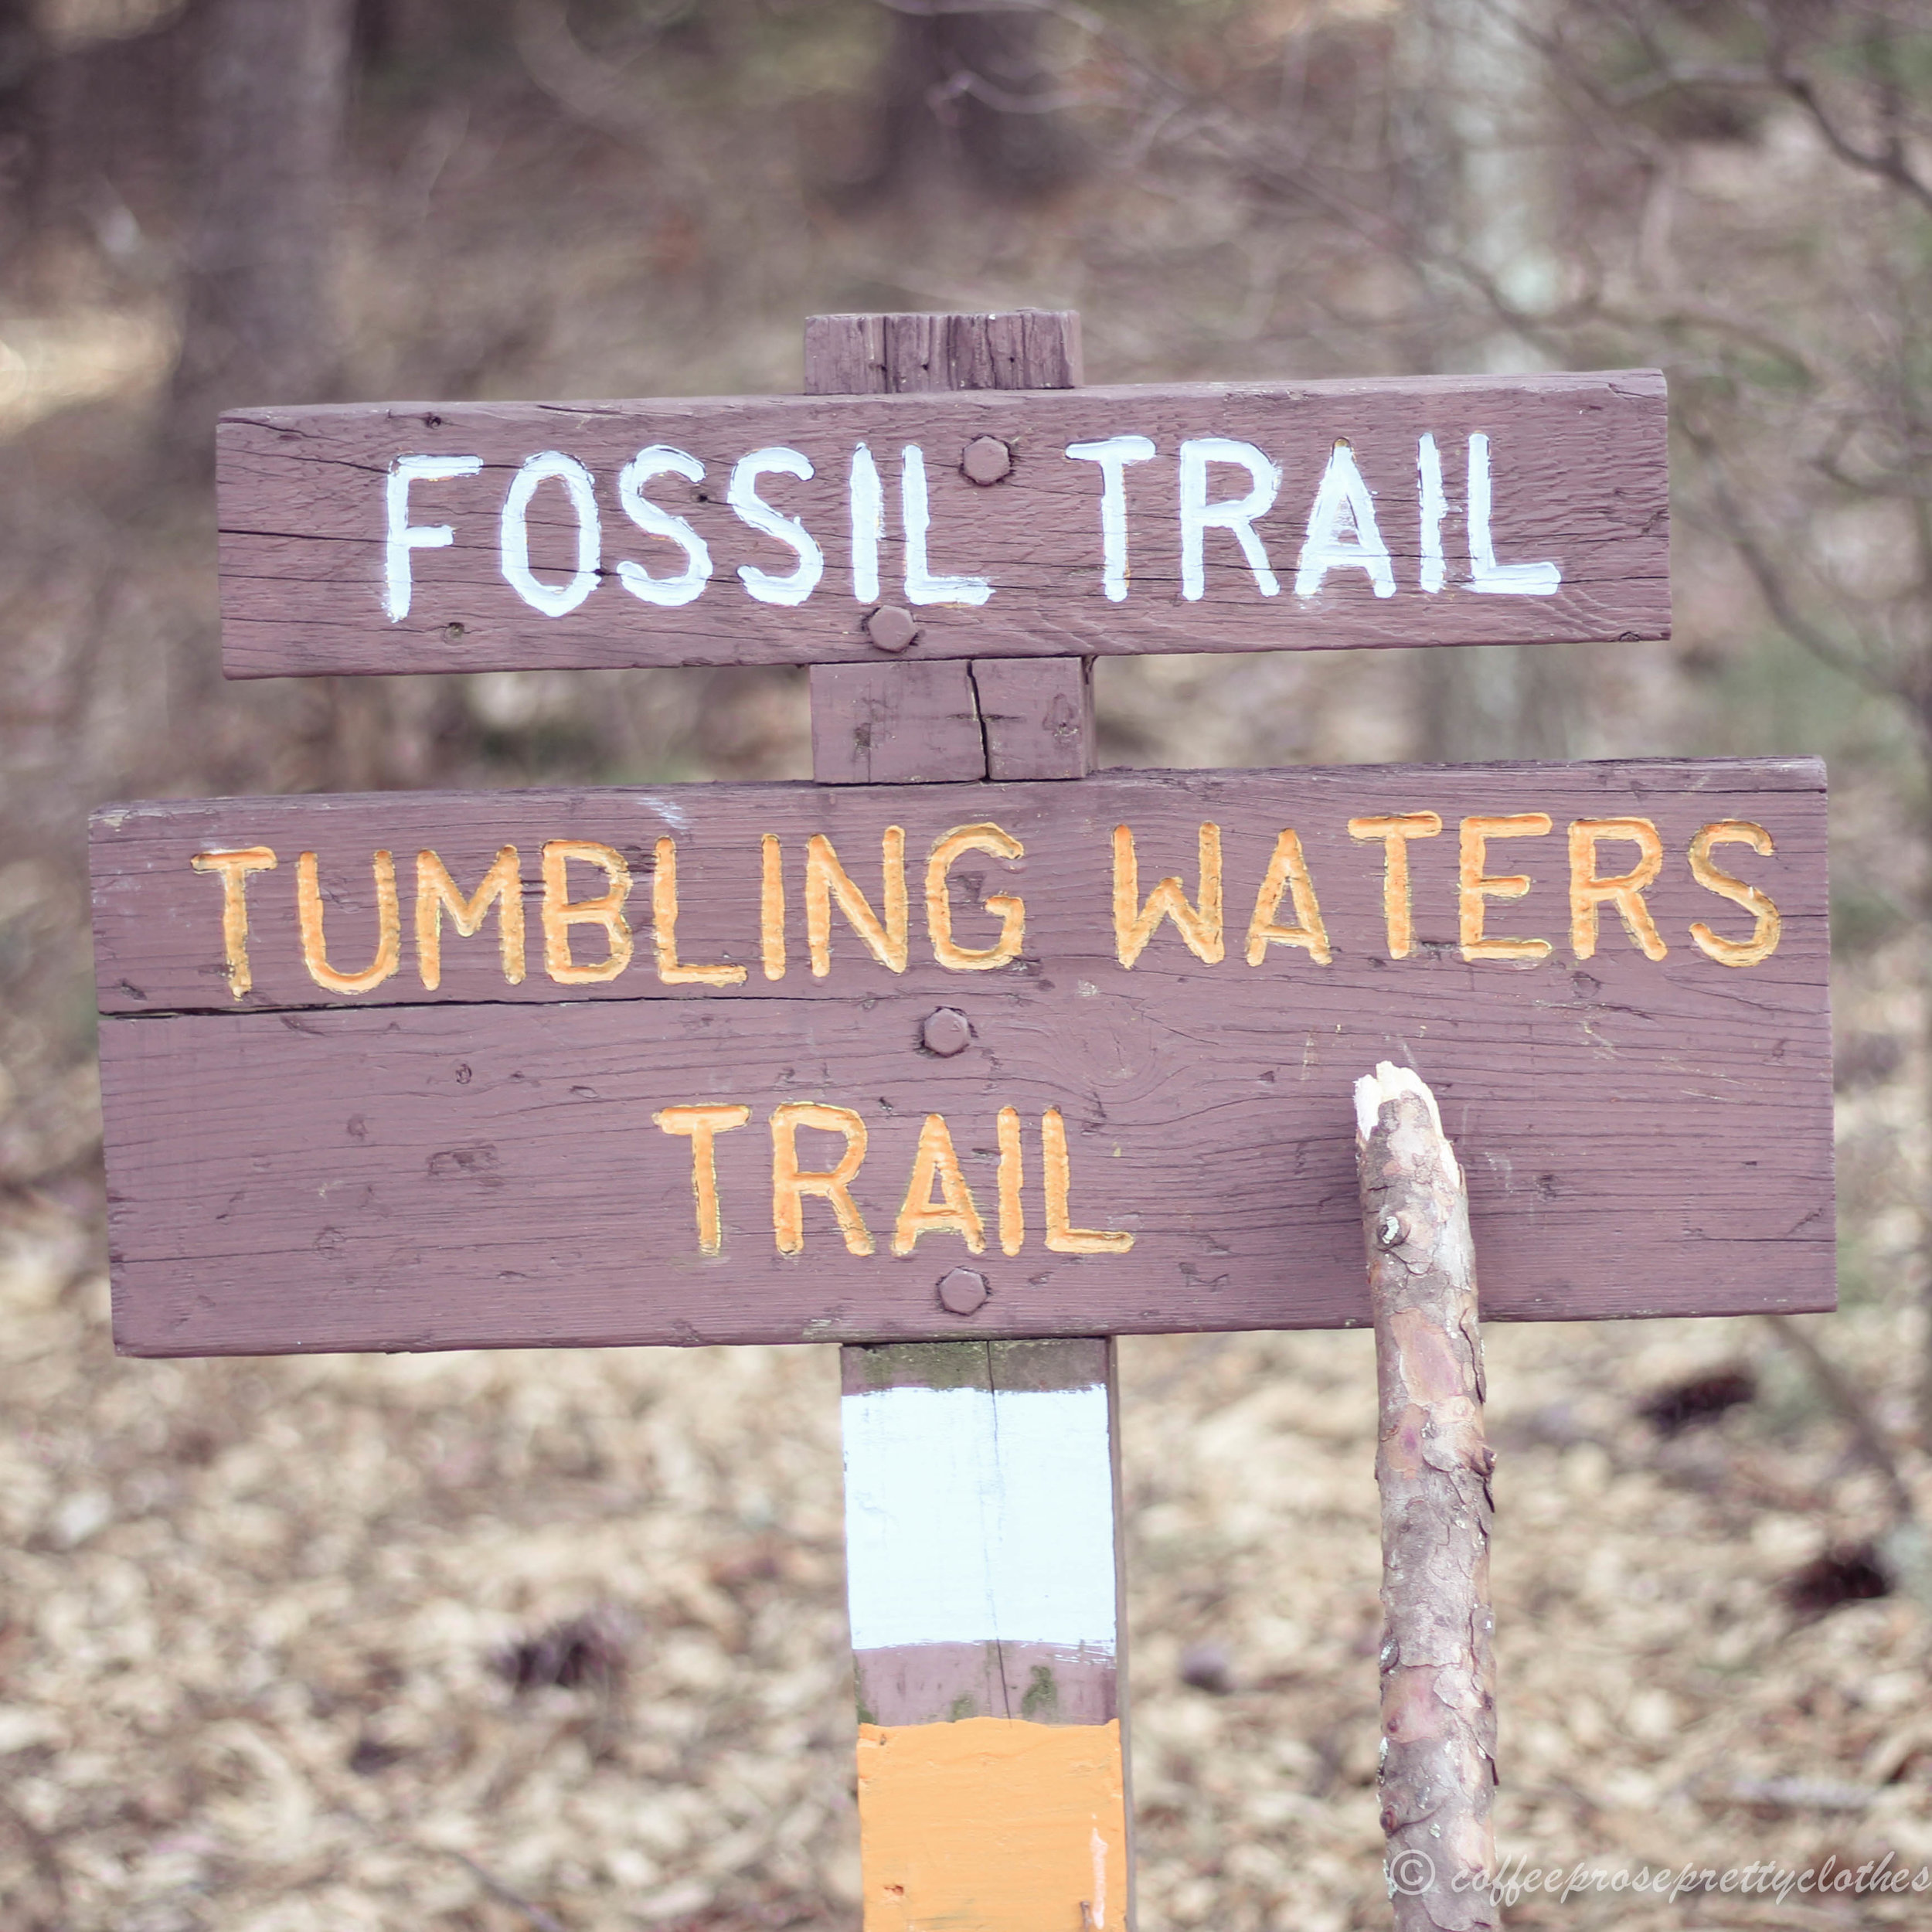 Poconos Mountain hiking, Fossil Trail, Tumbling Waters Trail